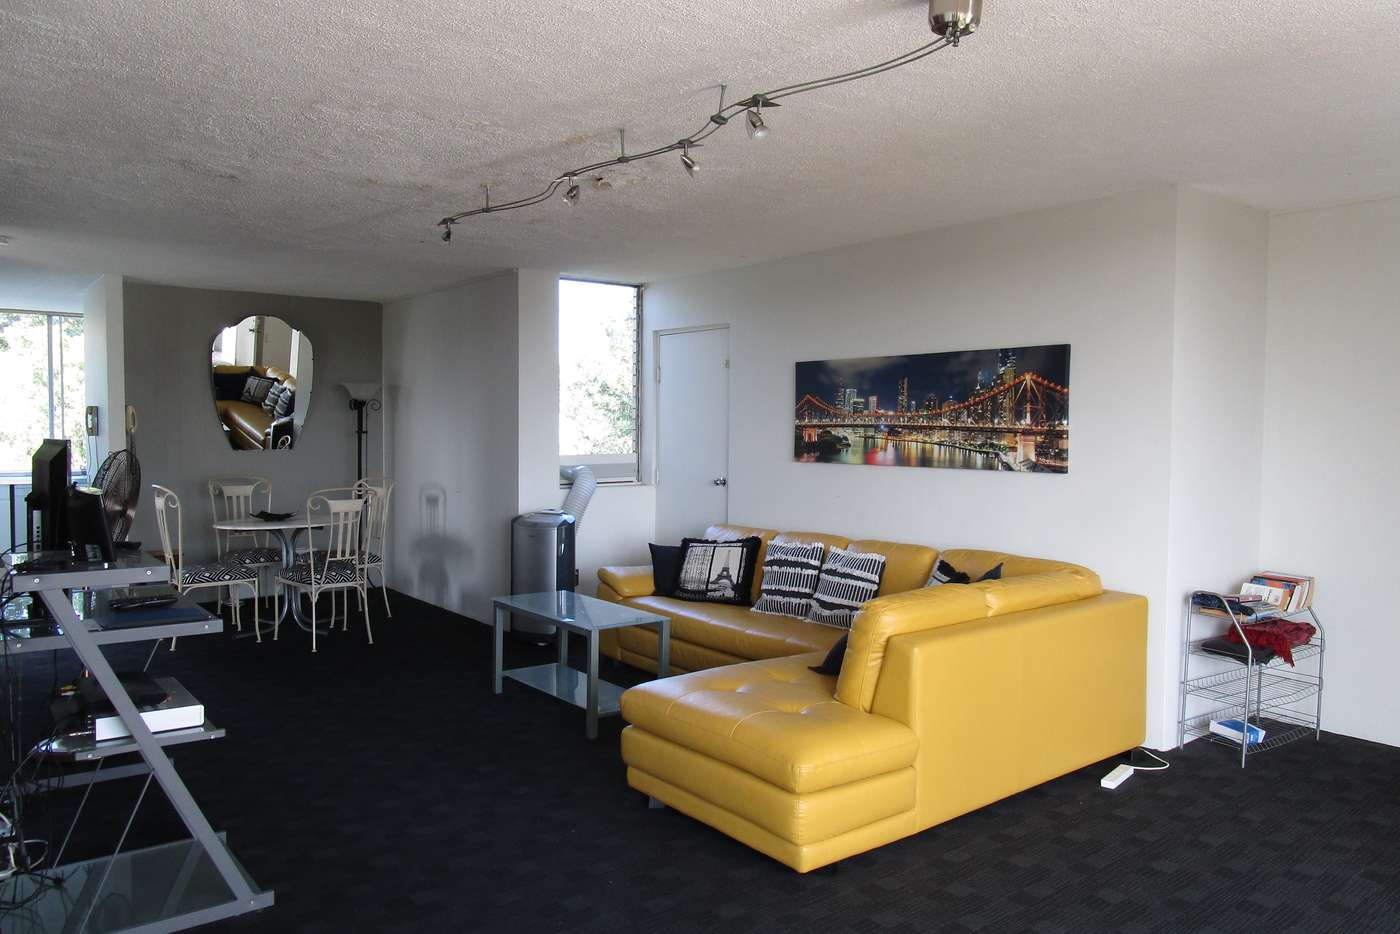 Main view of Homely apartment listing, 8/188 Butterfield Street, Herston QLD 4006